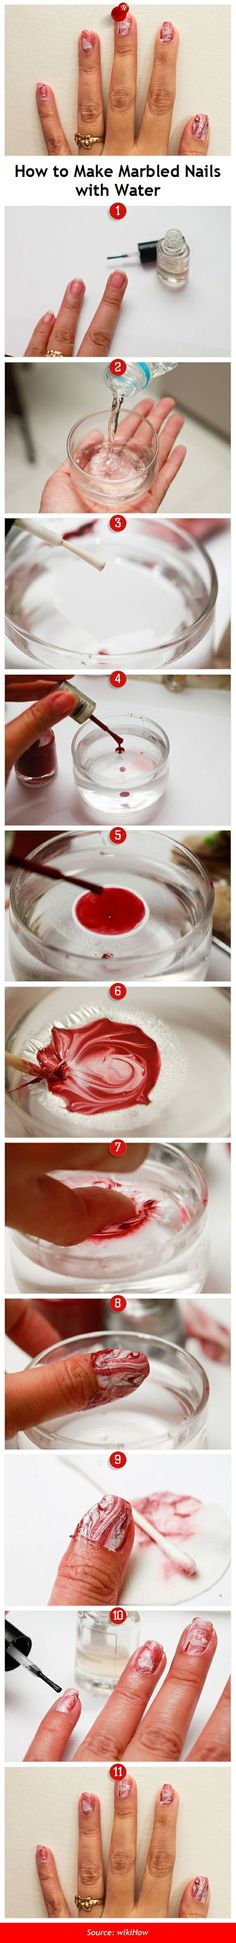 wikiHow to Create a Marble Nail Effect Using Water -- via wikiHow.com #nails